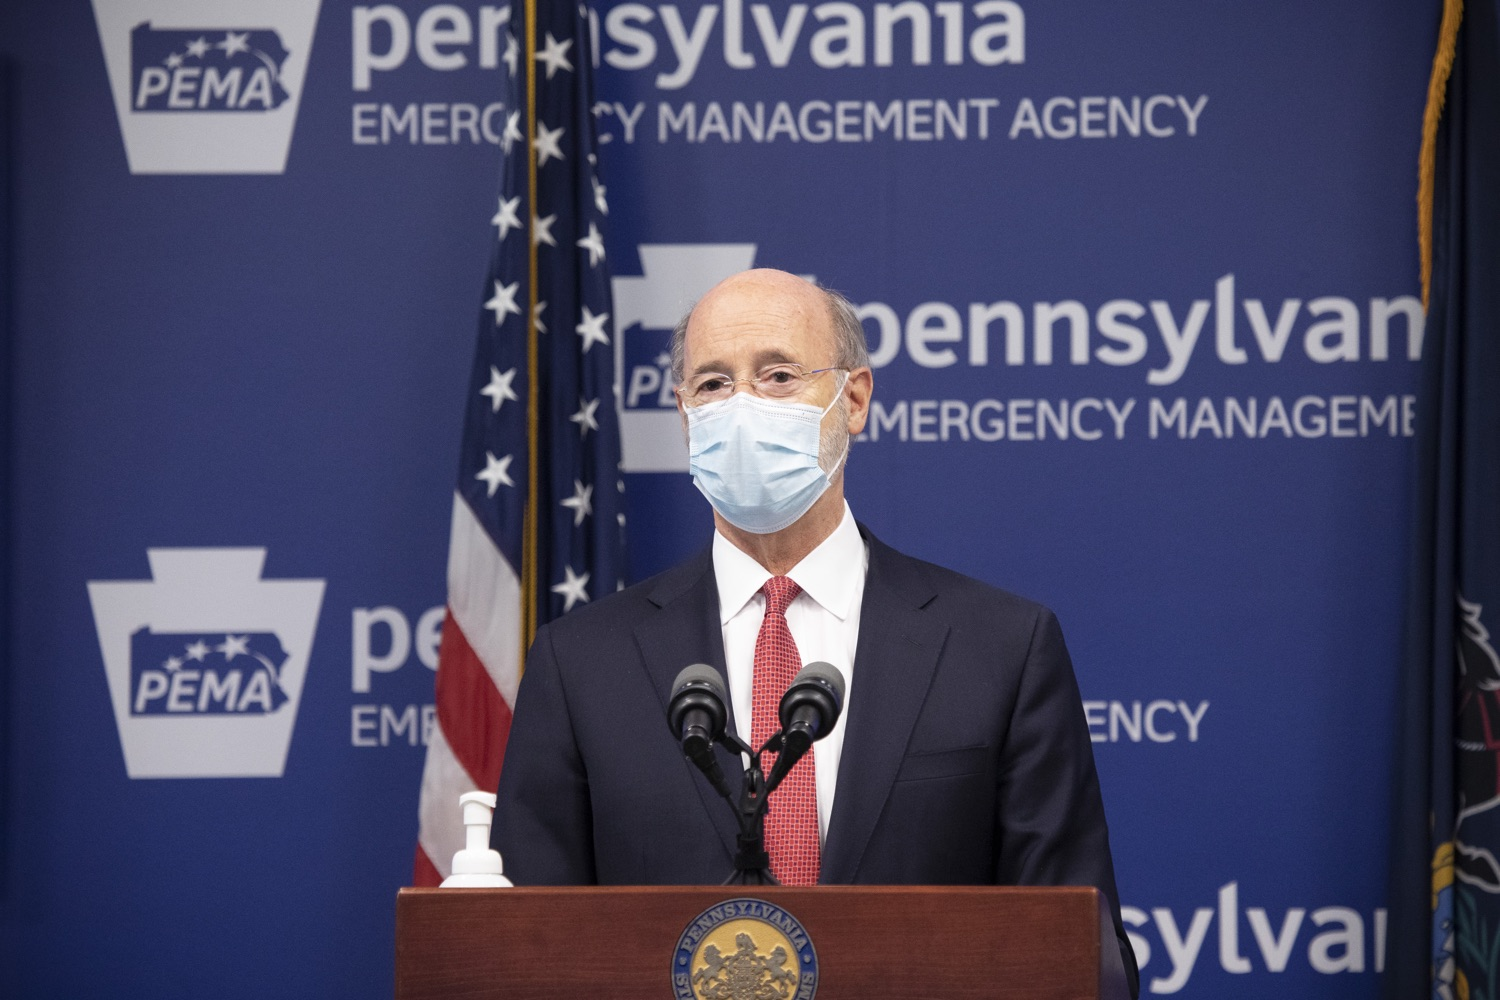 "<a href=""https://filesource.wostreaming.net/commonwealthofpa/photo/18405_gov_covidUpdate_dz_012.jpg"" target=""_blank"">⇣ Download Photo<br></a>Pennsylvania Governor Tom Wolf answers questions from the press.  With new modeling projecting 22,000 new COVID-19 cases per day in Pennsylvania in December, Governor Tom Wolf and Secretary of Health Dr. Rachel Levine today announced new targeted mitigation measures to help stop the spread during this critical time. These include a robust enforcement plan targeted at chronic violators along with an effort to ensure schools are safe and in compliance with COVID safety plans. The administration is also encouraging Pennsylvanians to limit unnecessary travel and stay at home.  Harrisburg, Pa. November 23, 2020"